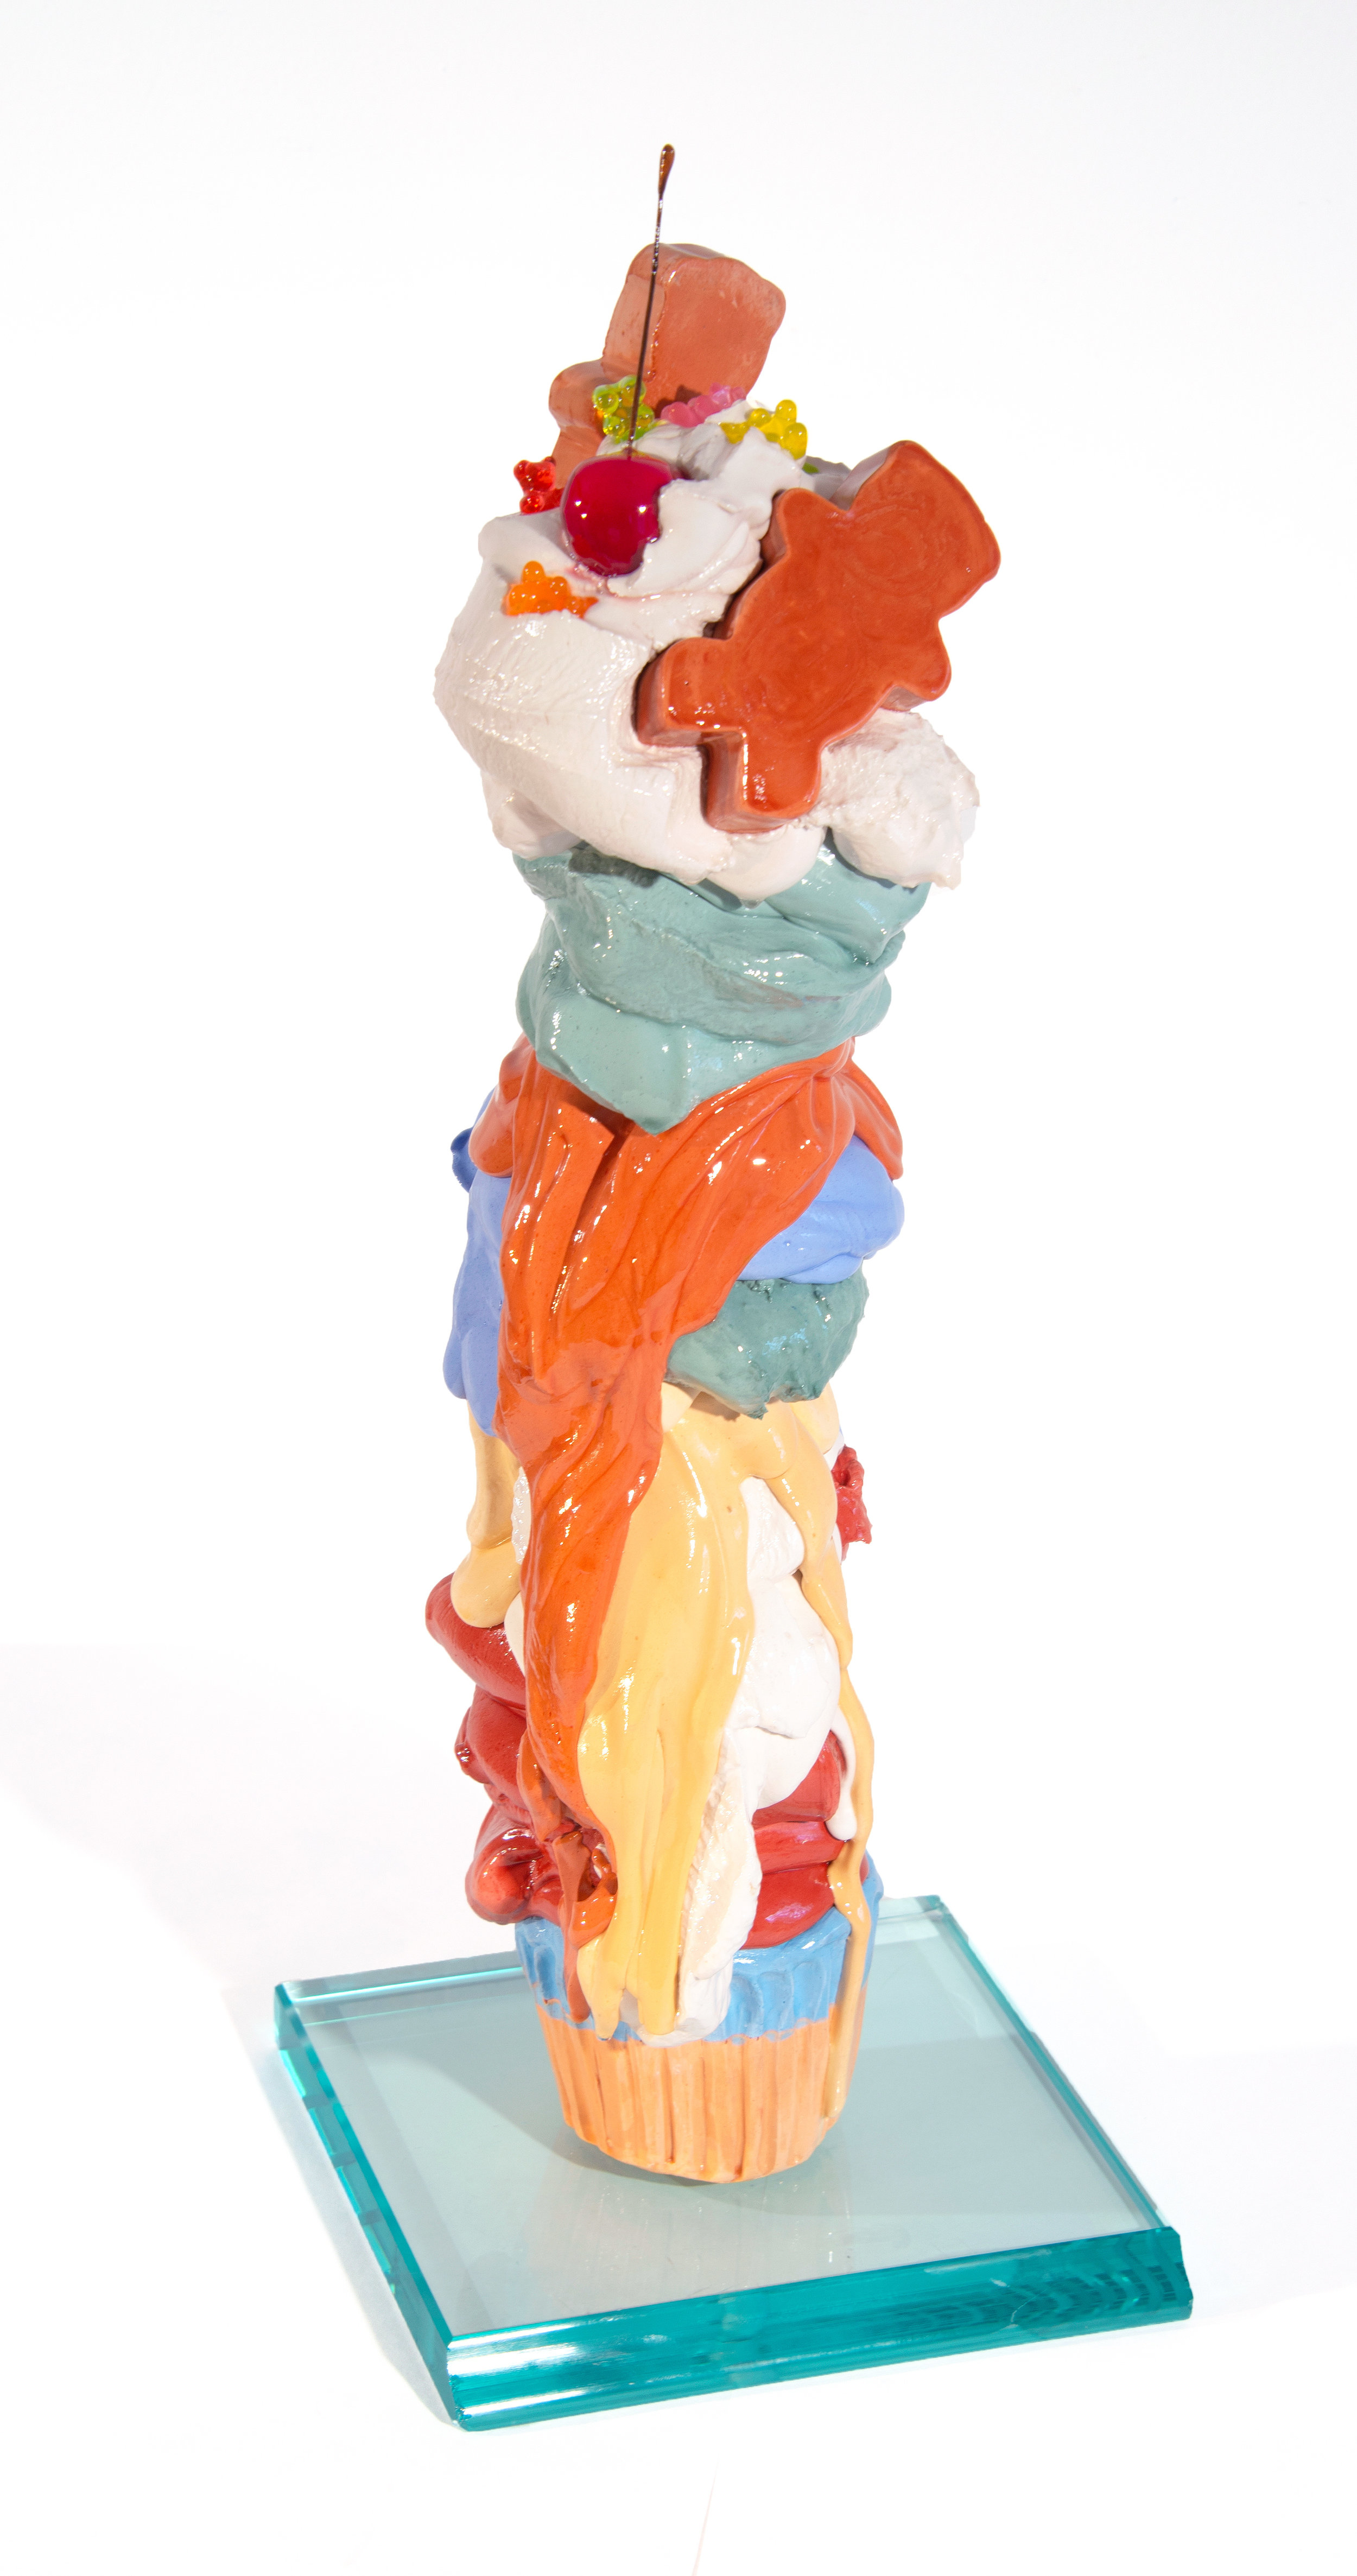 """Candy Land - 19"""" x 7"""" x 7""""Cement, mix media, glass baseSOLD"""